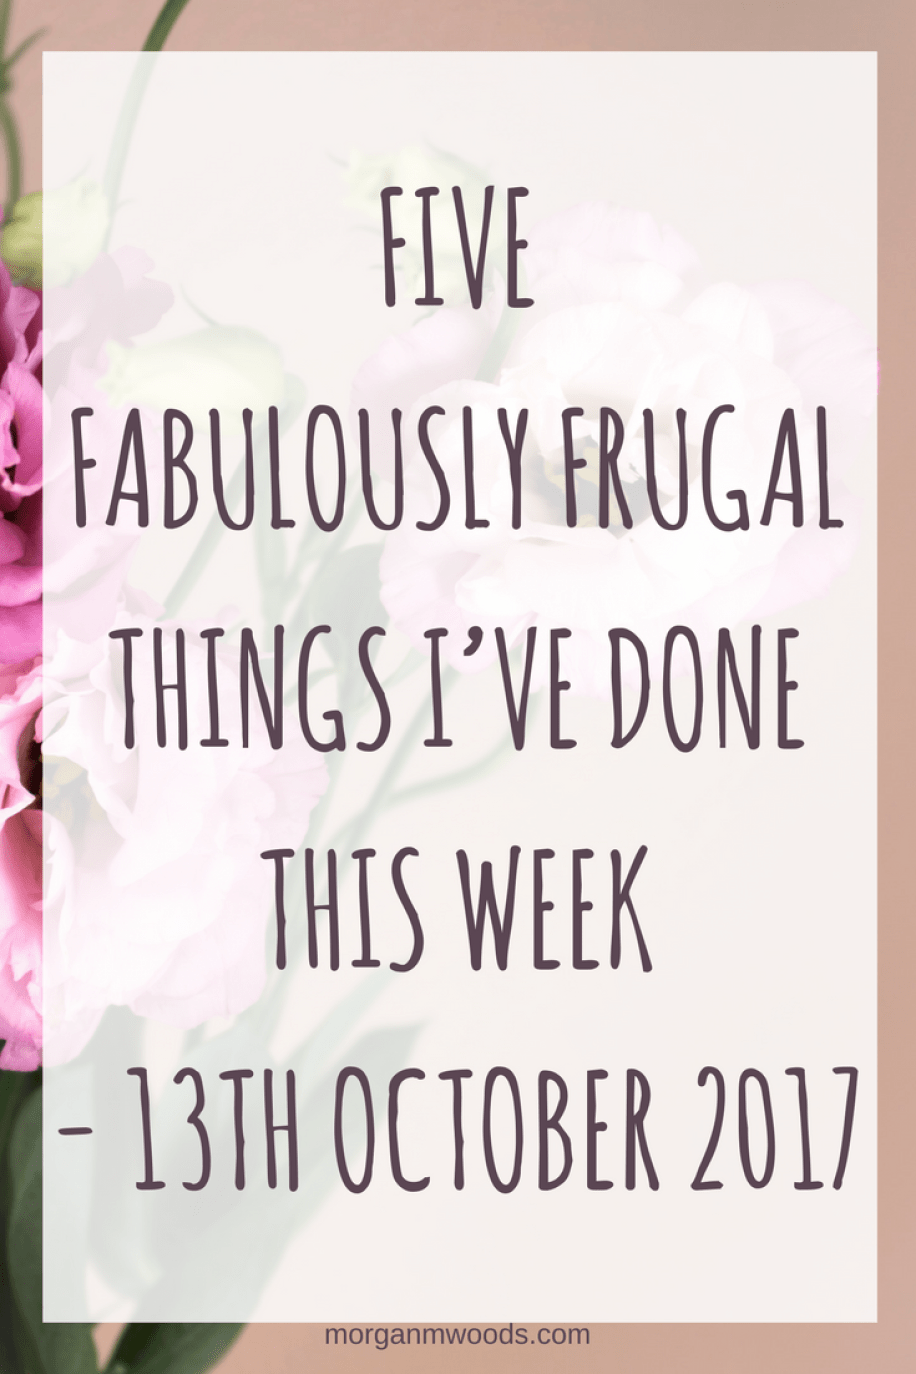 Five Fabulously Frugal Things I've Done This Week - 13th October 2017